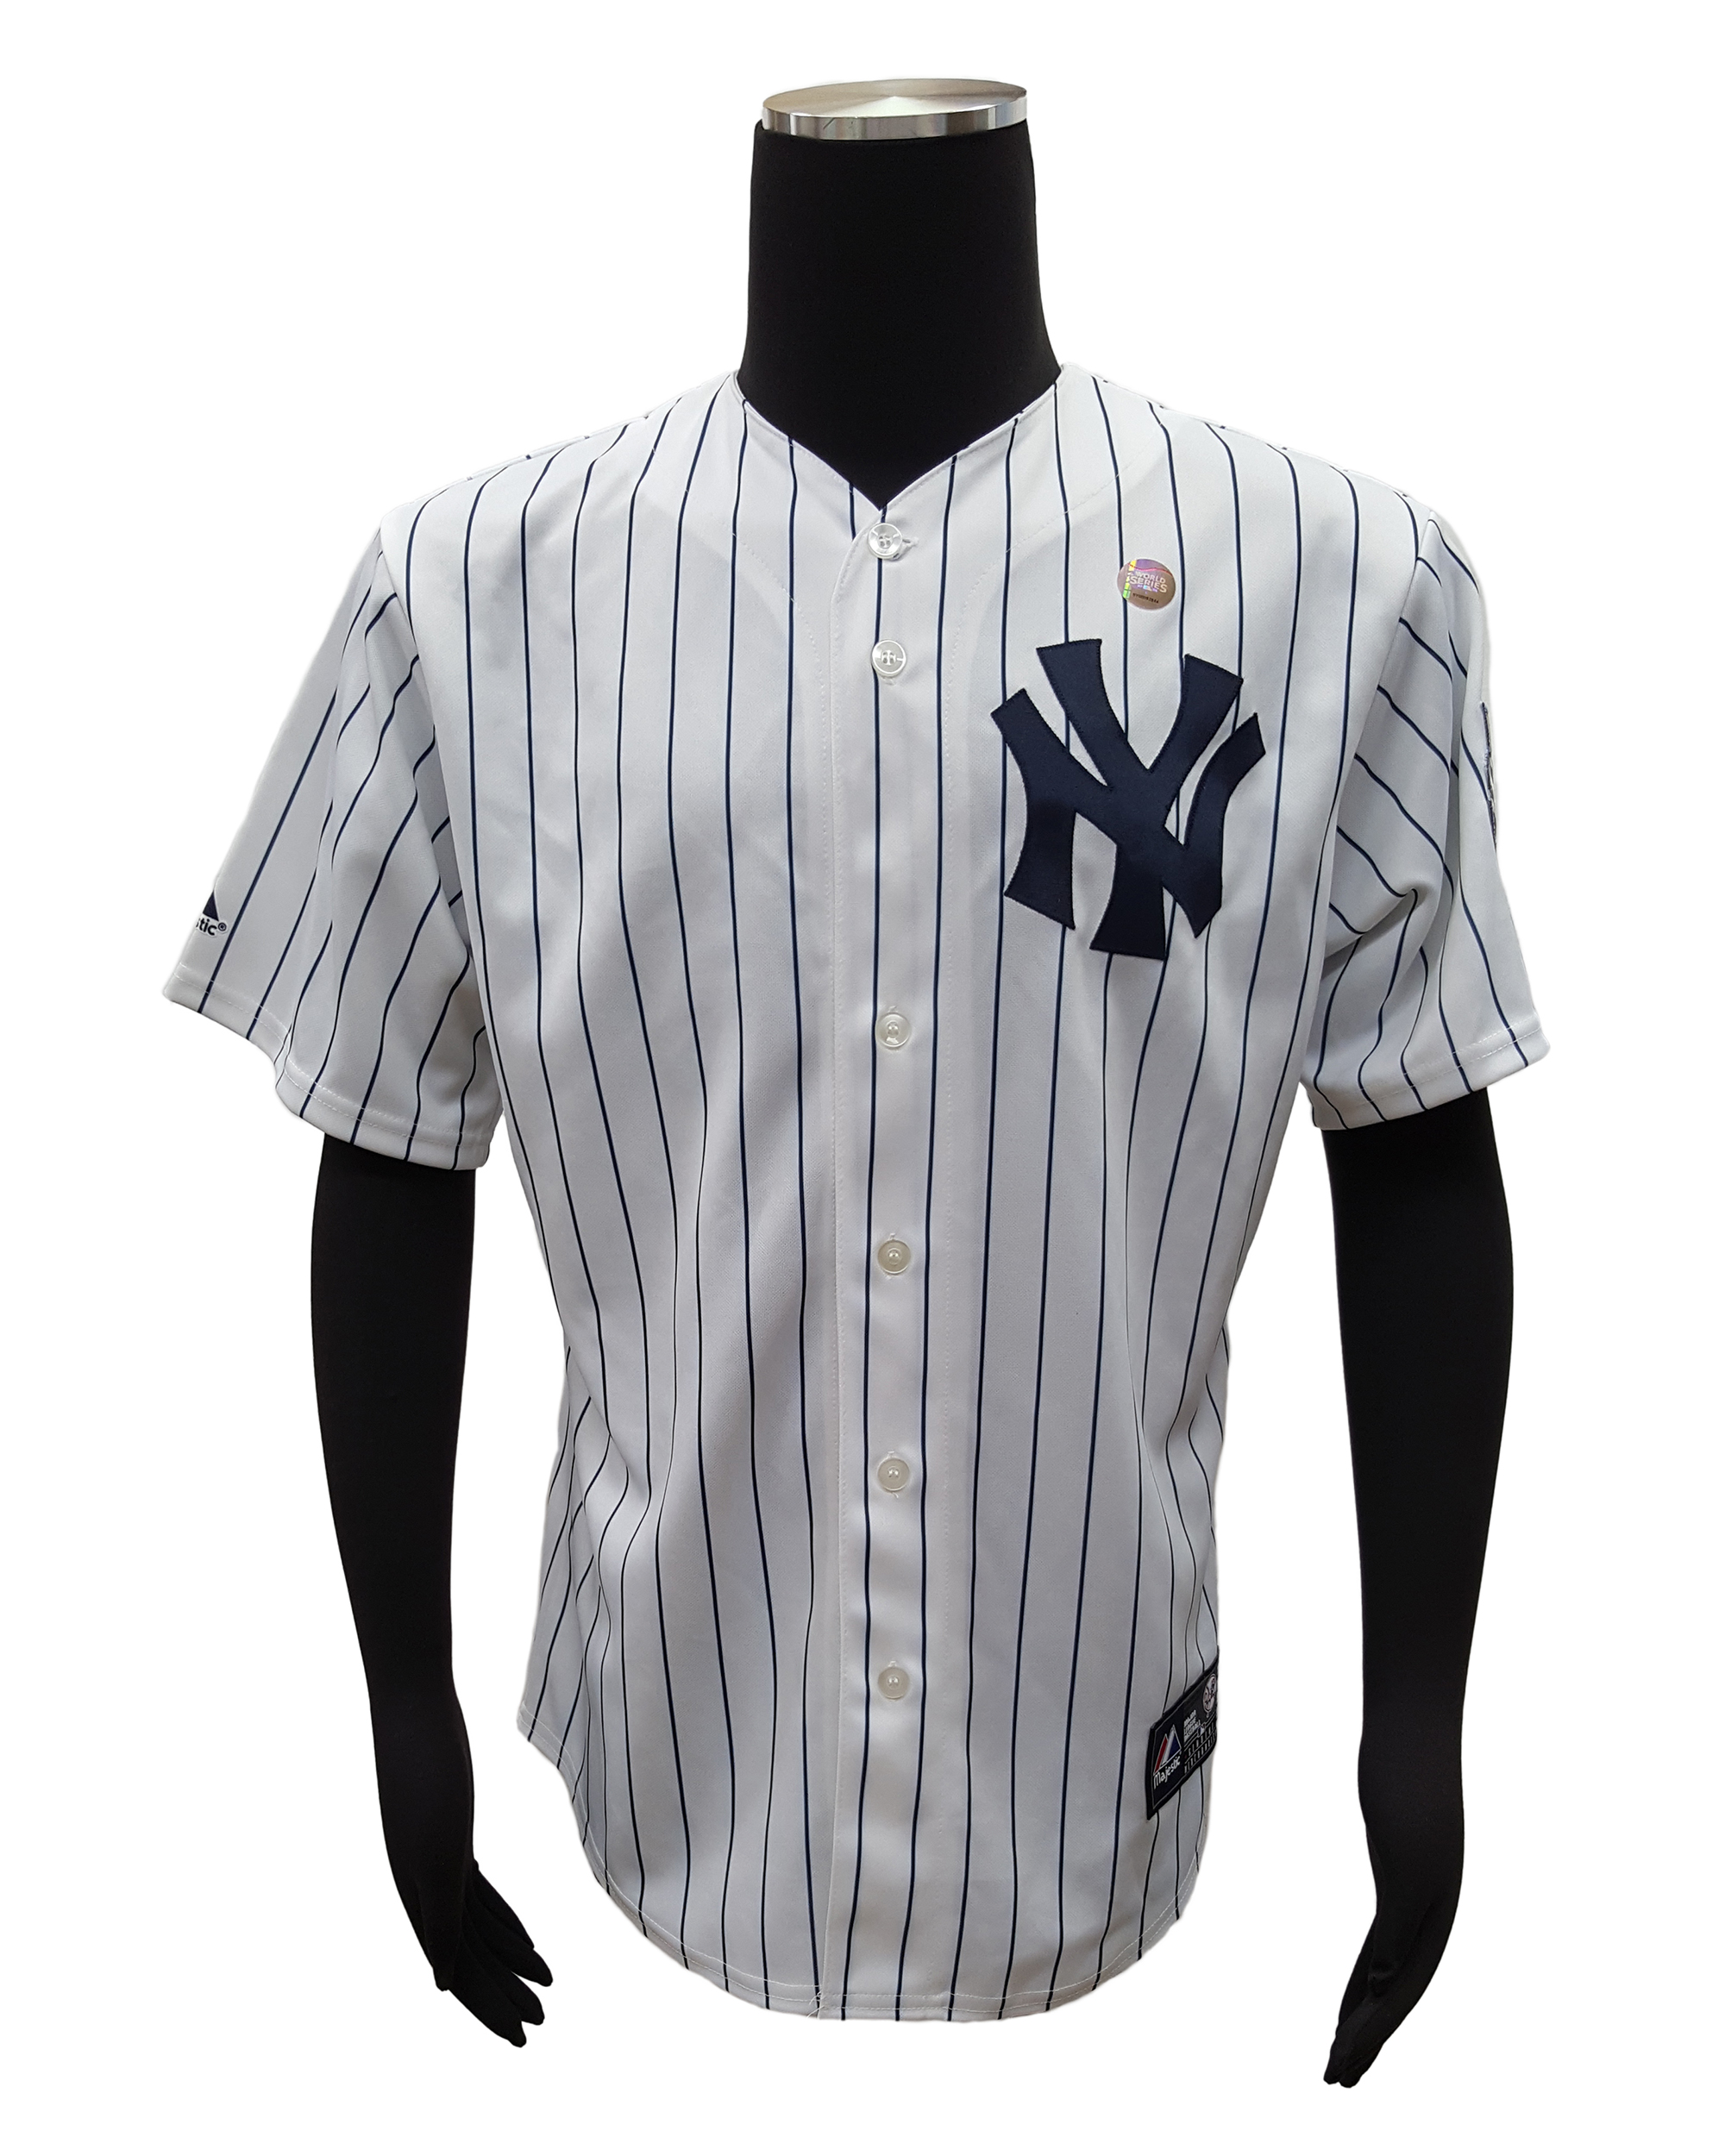 pretty nice b7aba dca9f Details about Majestic NY Yankees Mark Teixeira Home Jersey w/2009 World  Series Patch